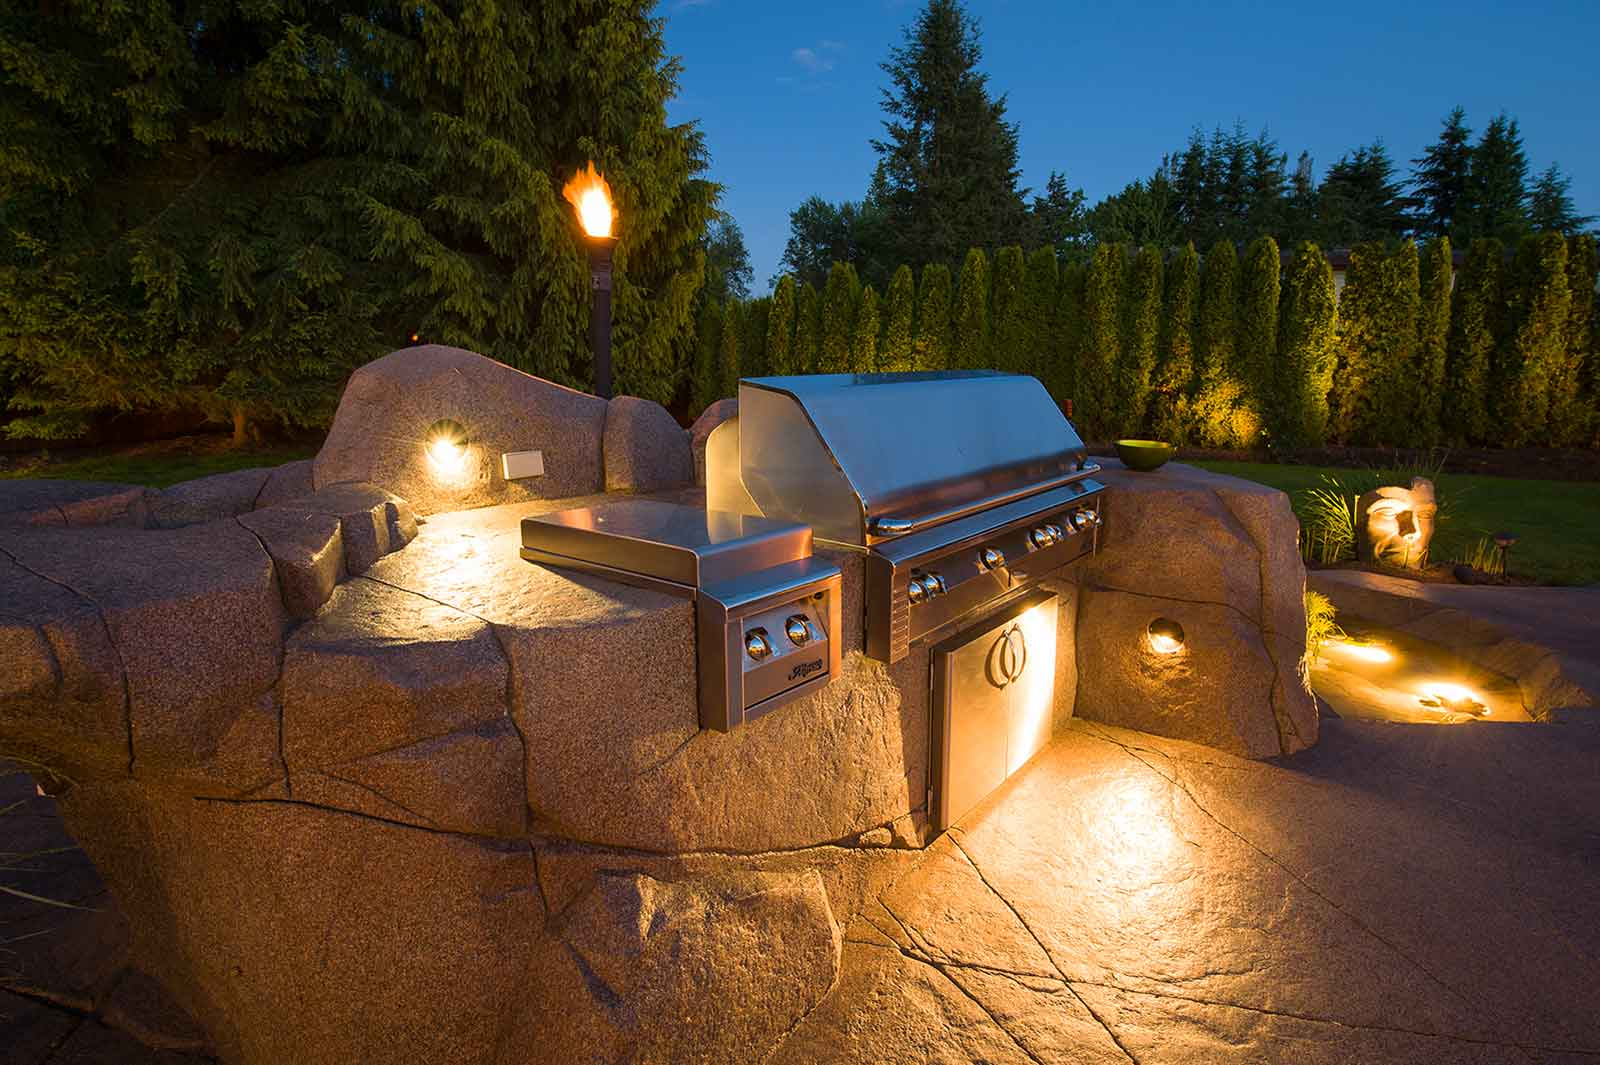 Outdoor barbeque lighting